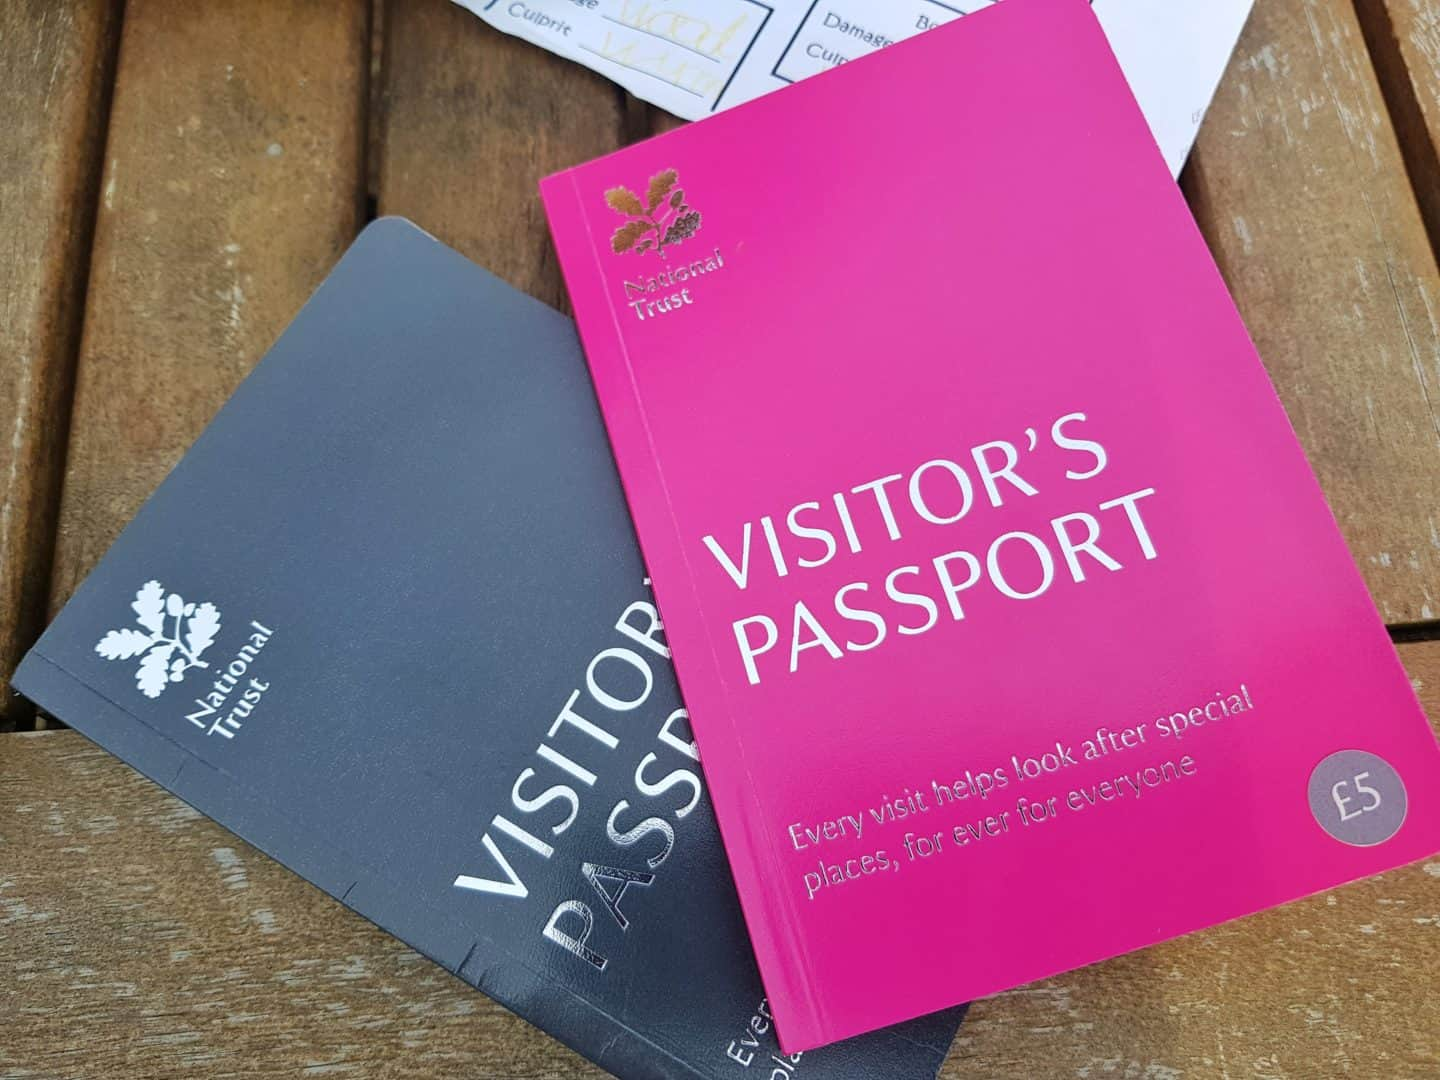 National Trust visitors passports